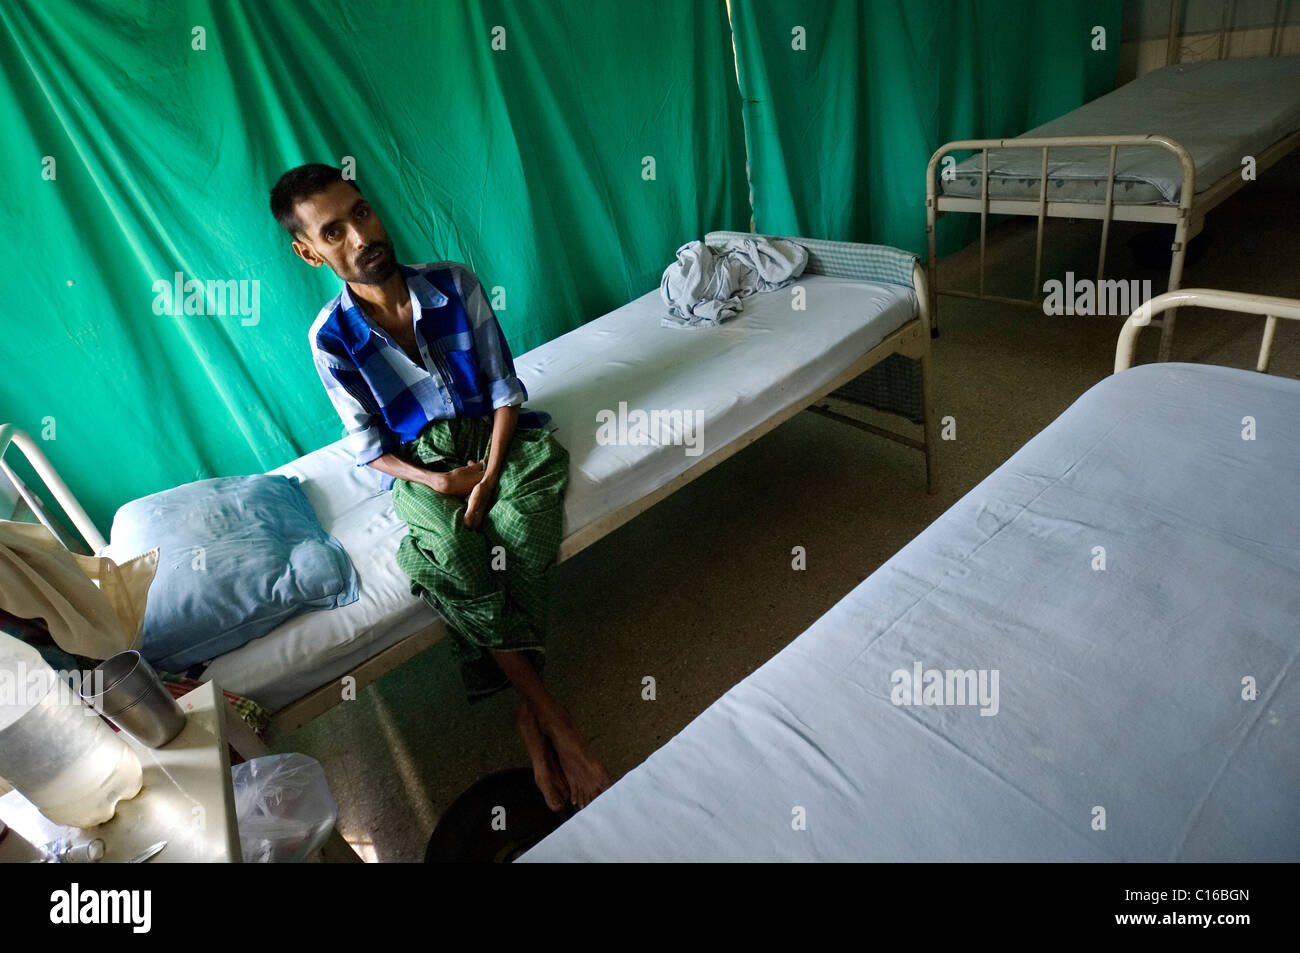 Anwari Mondol, 35, infected with a strain of life-threatening tuberculosis has been admitted in the private hospital - Stock Image